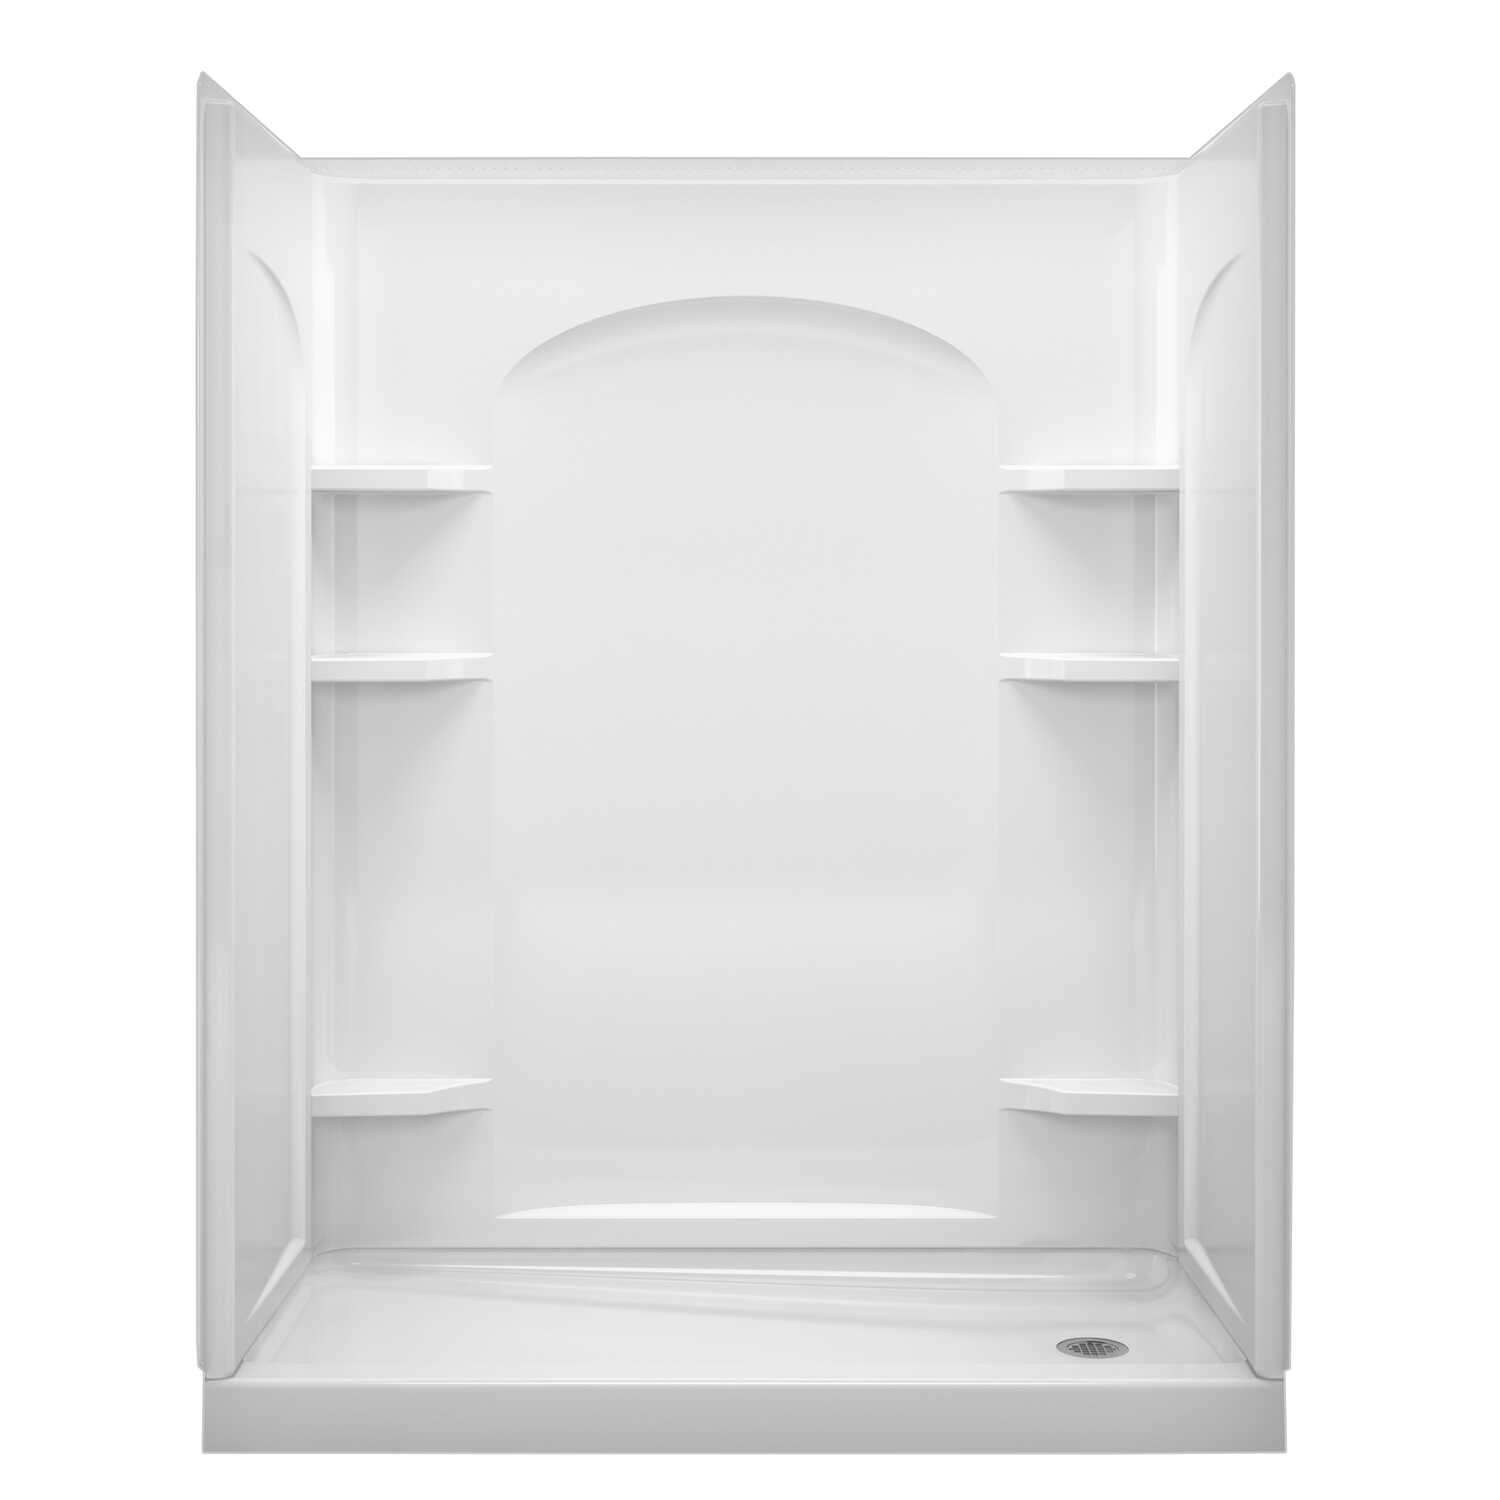 Sterling  Ensemble  72.5 in. H x 30 in. W x 60 in. L White  Shower Back Wall  One Piece  Rectangular